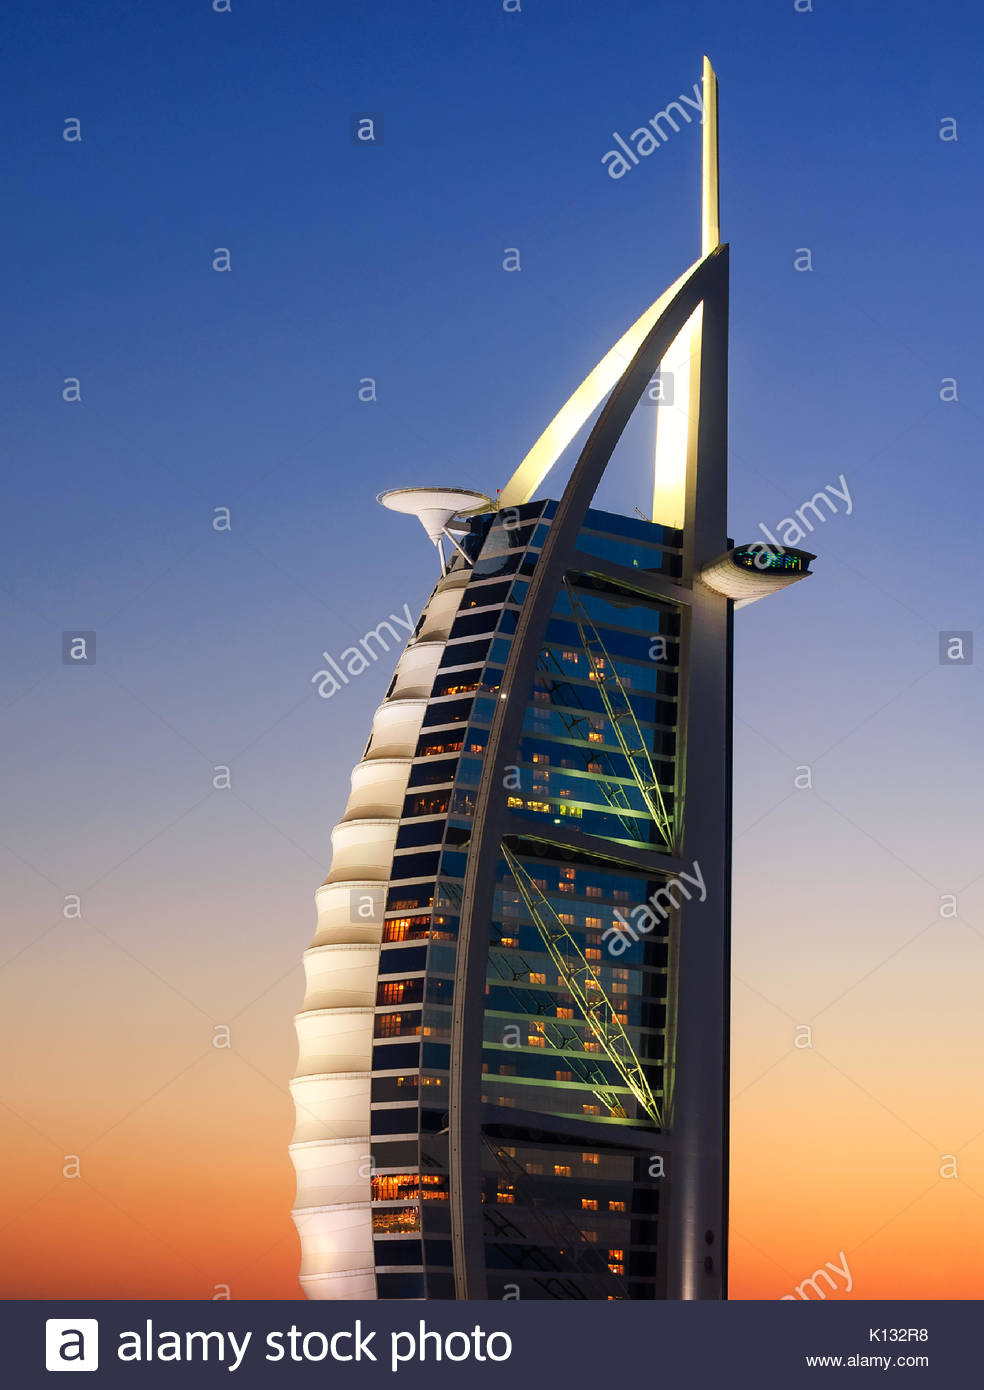 DUBAI, UAE - APR 14, 2013: Famous Jumeirah beach view with 7 star hotel Burj Al Arab, Dubai, United Arab Emirates - Stock Image